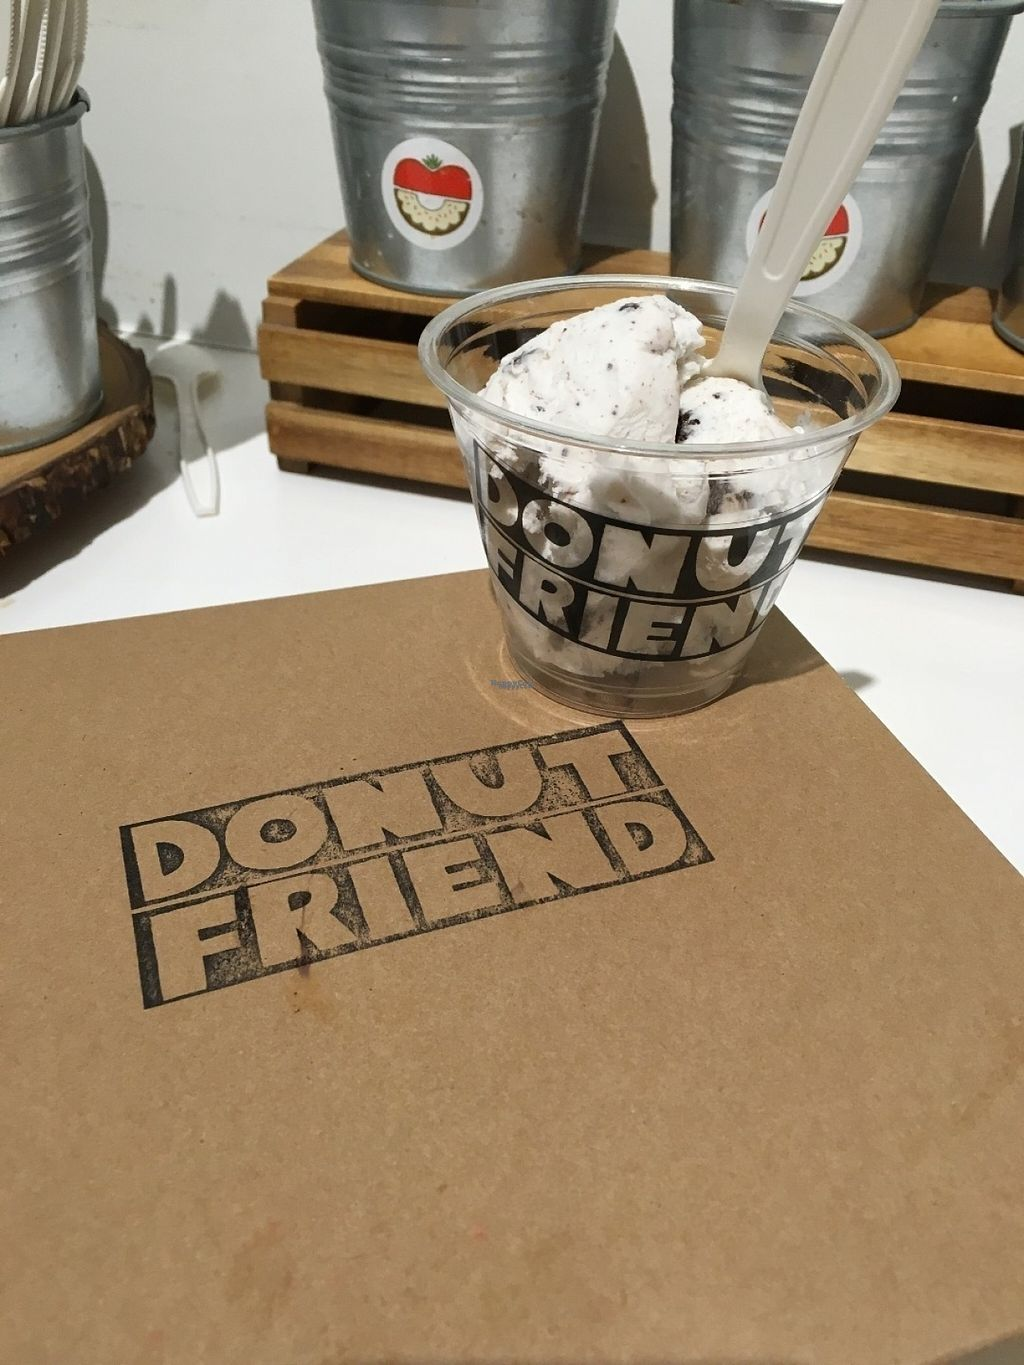 """Photo of Donut Friend  by <a href=""""/members/profile/Tigra220"""">Tigra220</a> <br/>Vegan Cookies n Cream ice cream is so creamy and delicious!  <br/> August 7, 2016  - <a href='/contact/abuse/image/43258/166426'>Report</a>"""